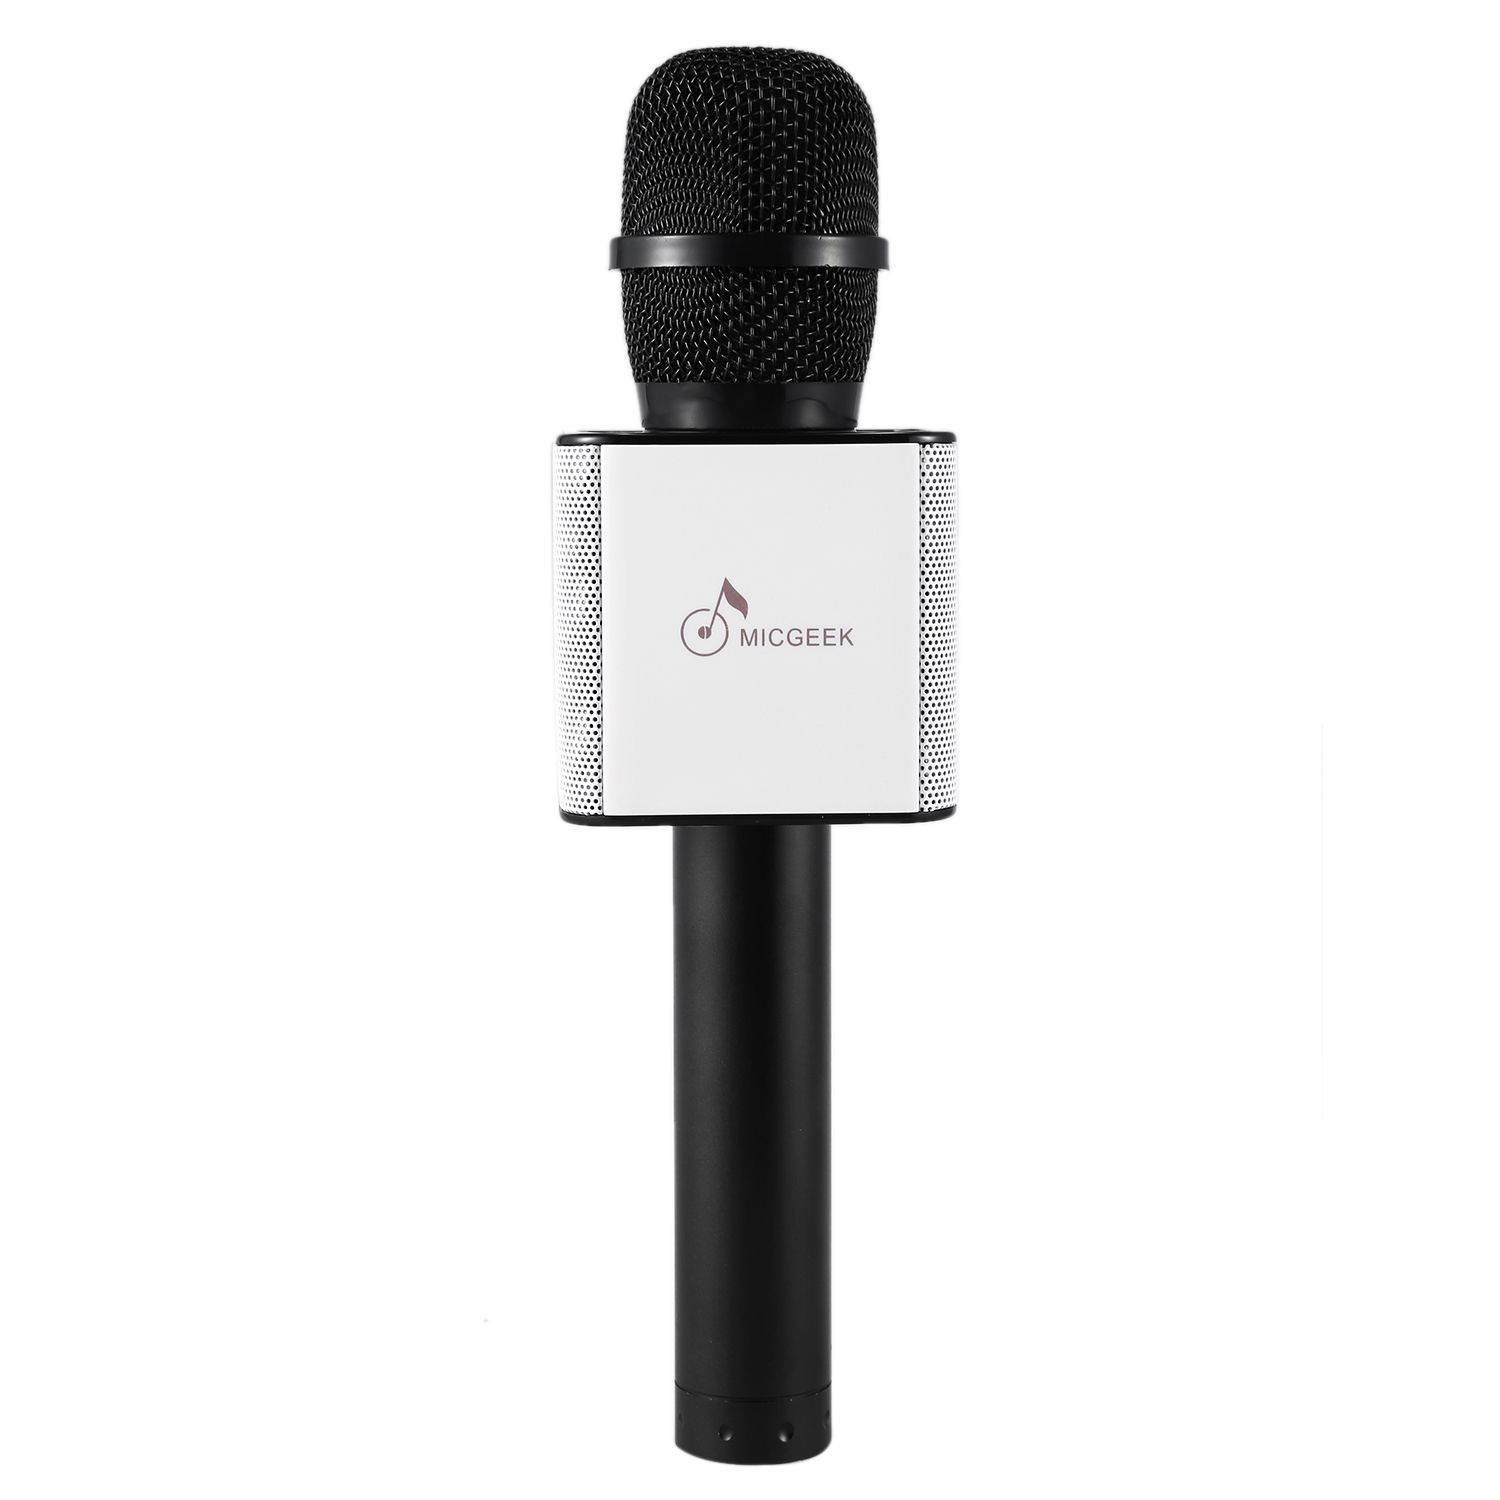 KTV Sing Karaoke OK Microphone Q9 Wireless Bluetooth Microphones With Speaker Mini Home Outdoor KTV For IphoneKTV Sing Karaoke OK Microphone Q9 Wireless Bluetooth Microphones With Speaker Mini Home Outdoor KTV For Iphone